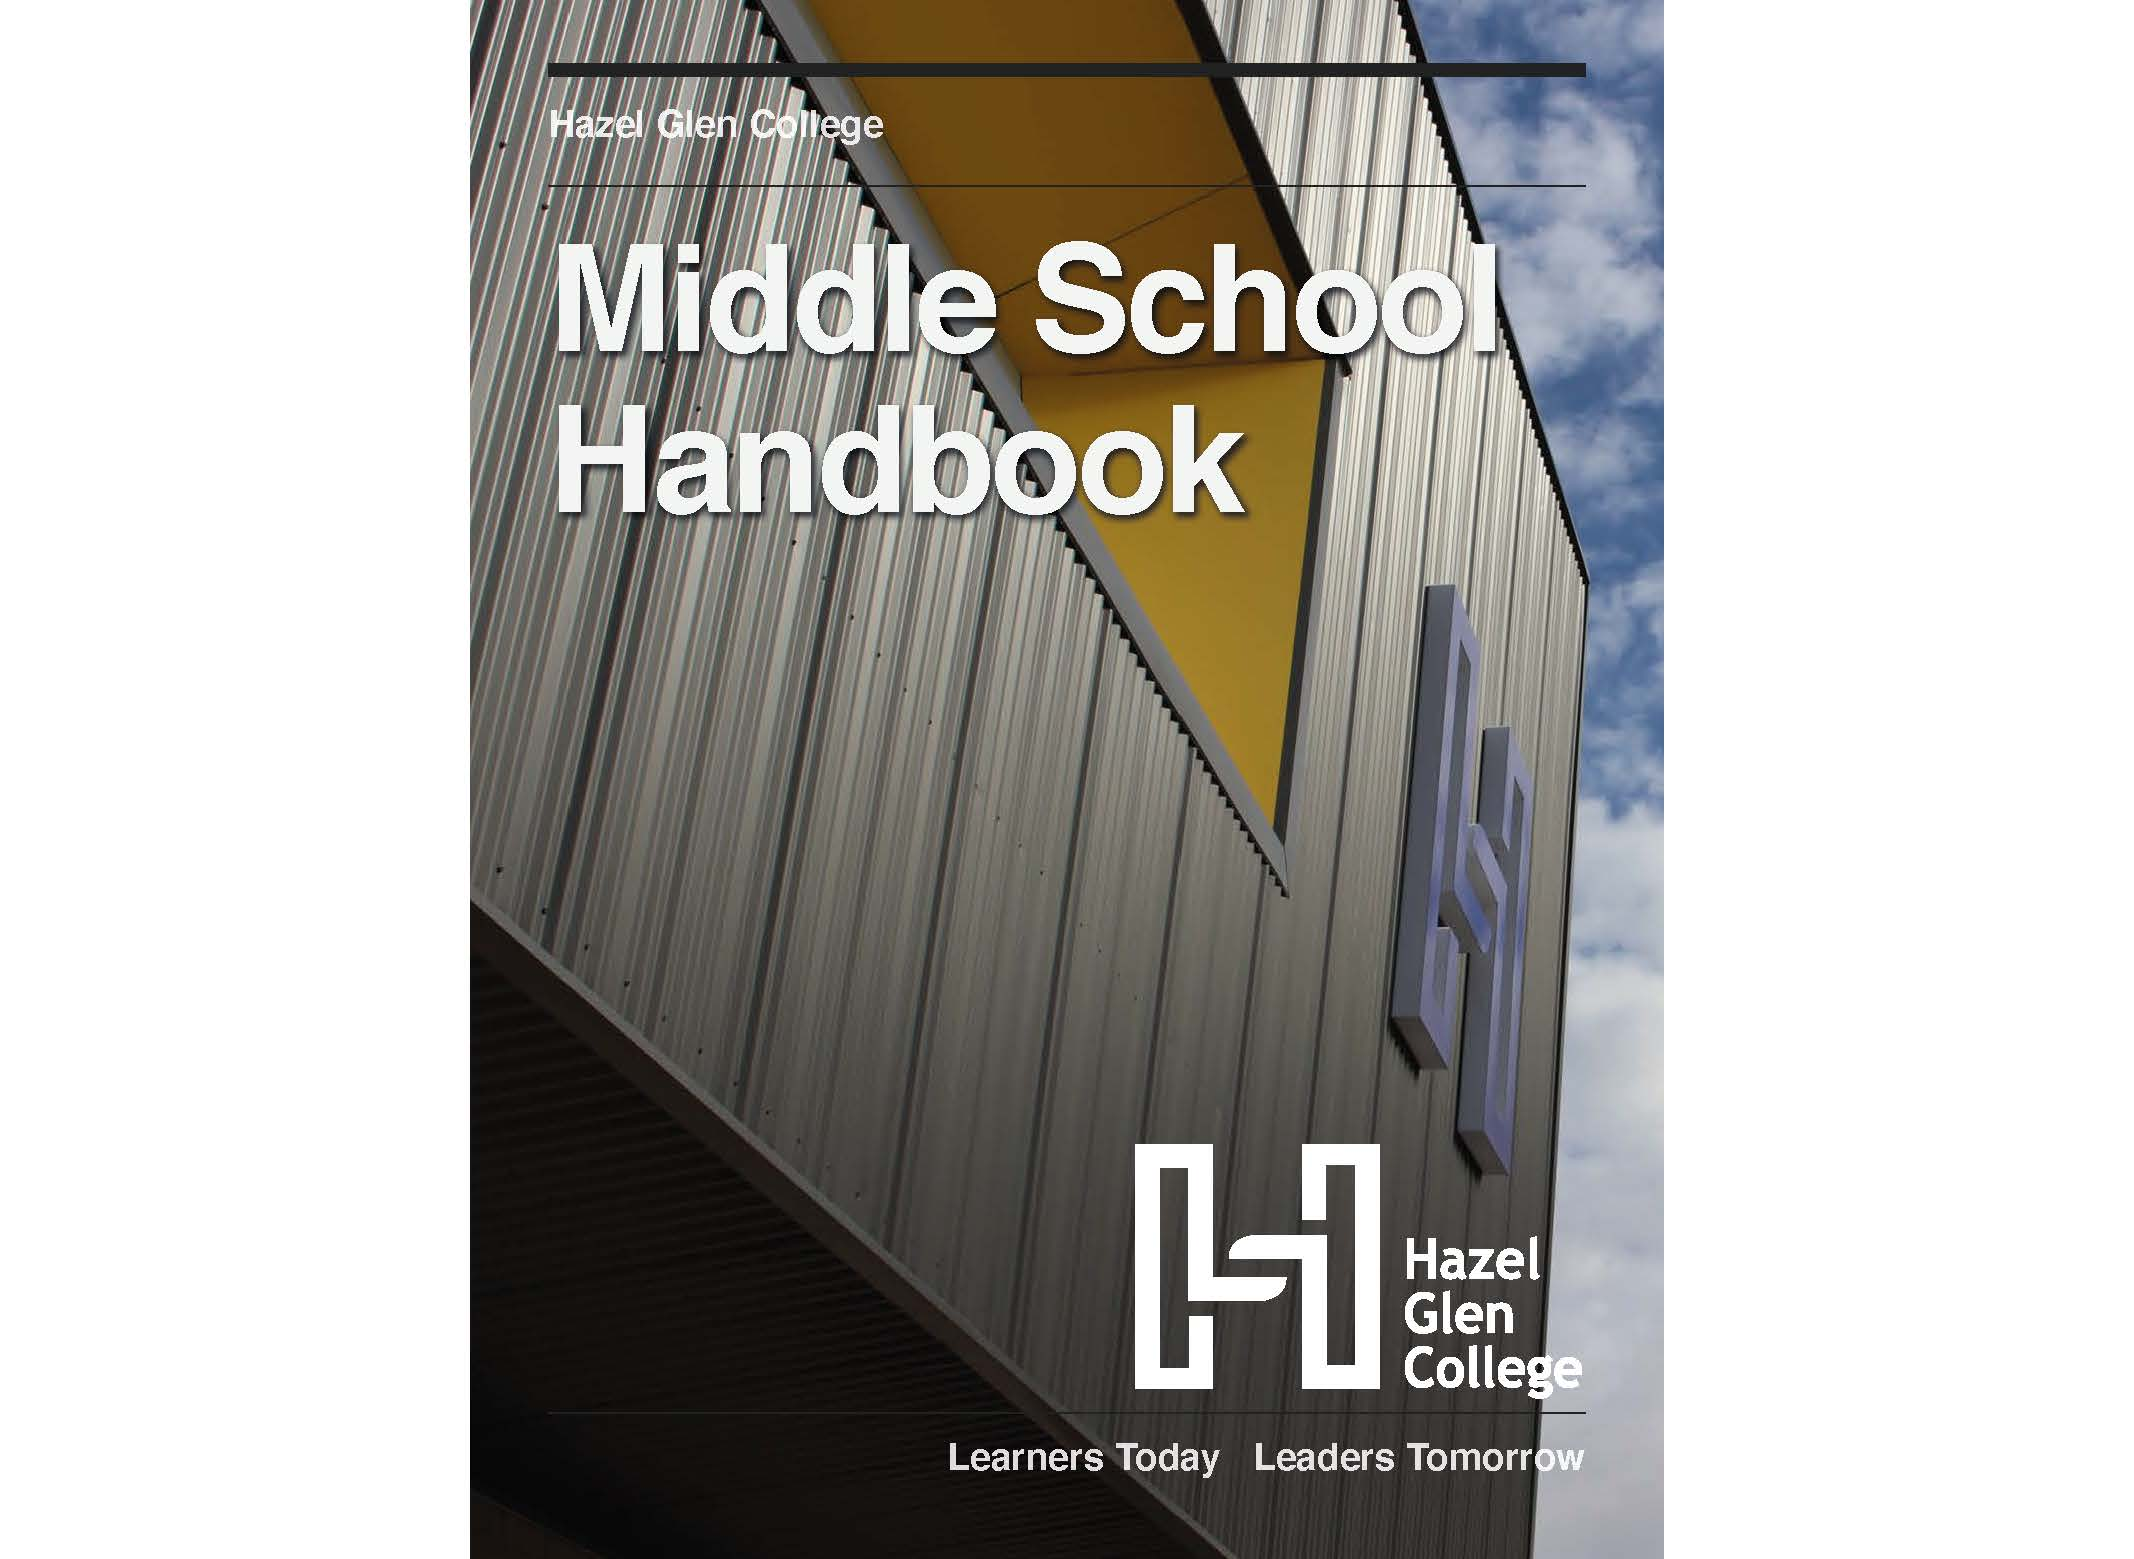 A picture of the Middle School Handbook cover featuring an image of the Middle School Building.